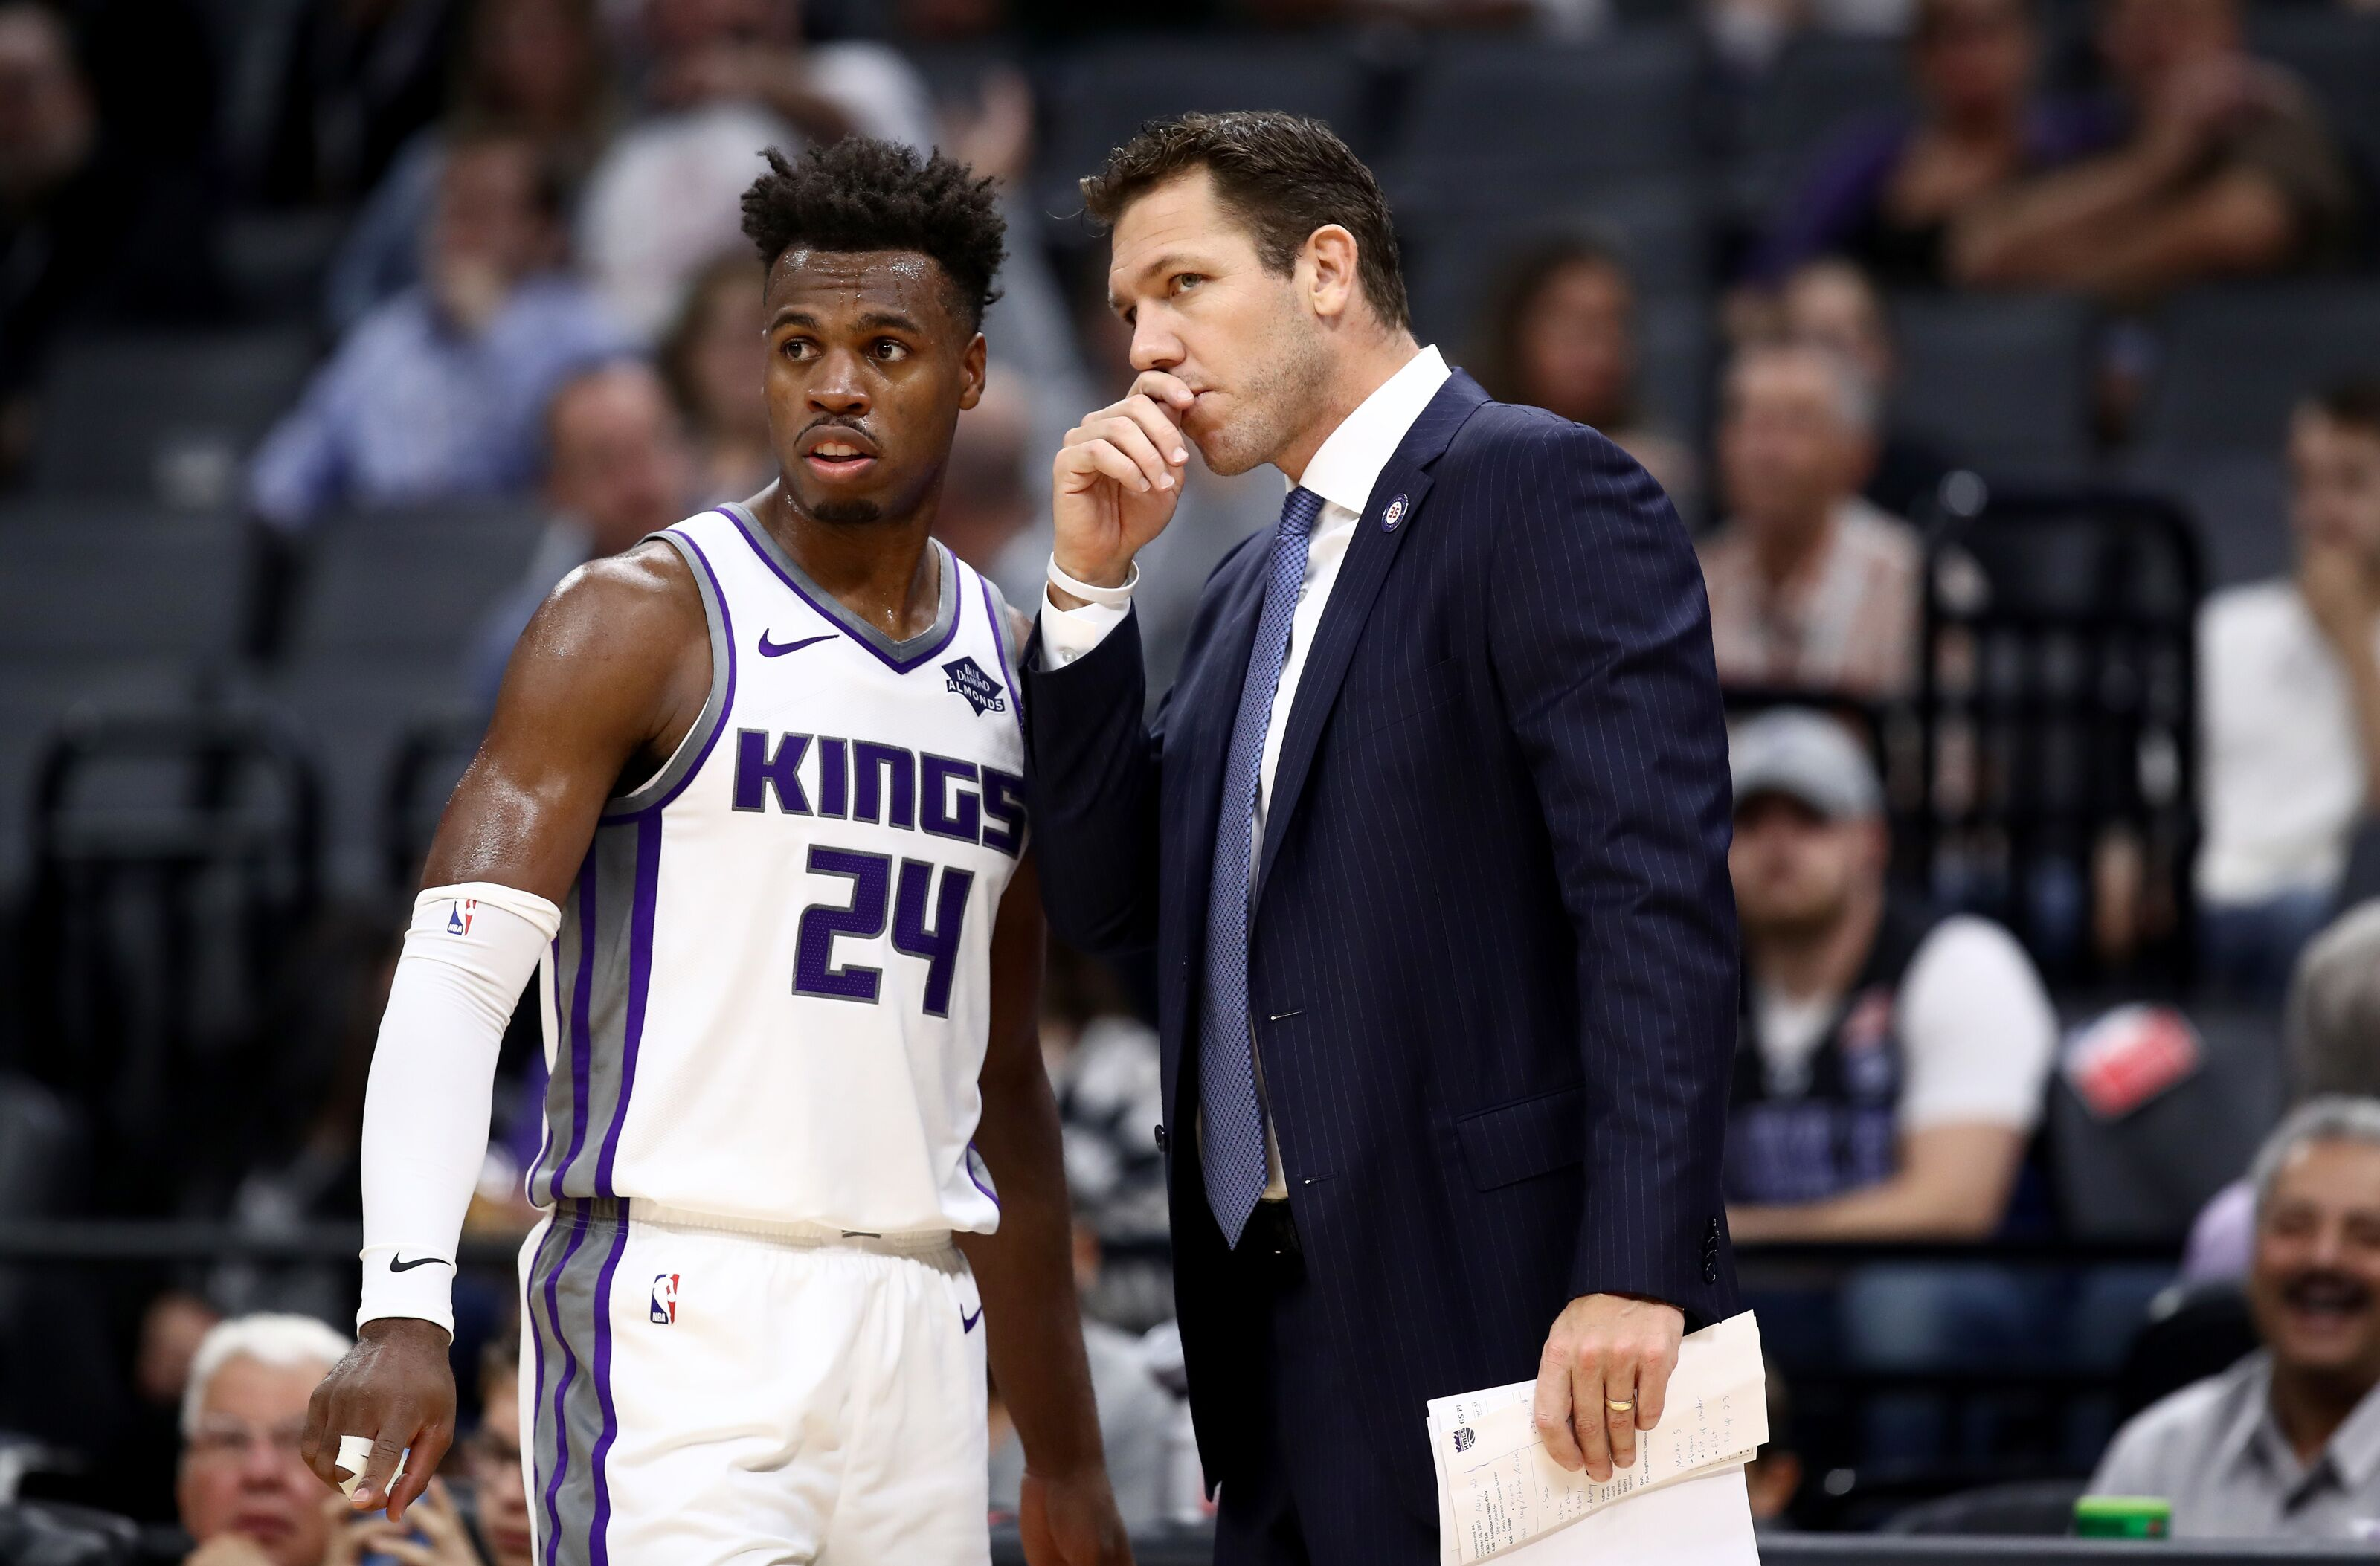 3 Ways That The Buddy Hield Situation Hurts The Kings